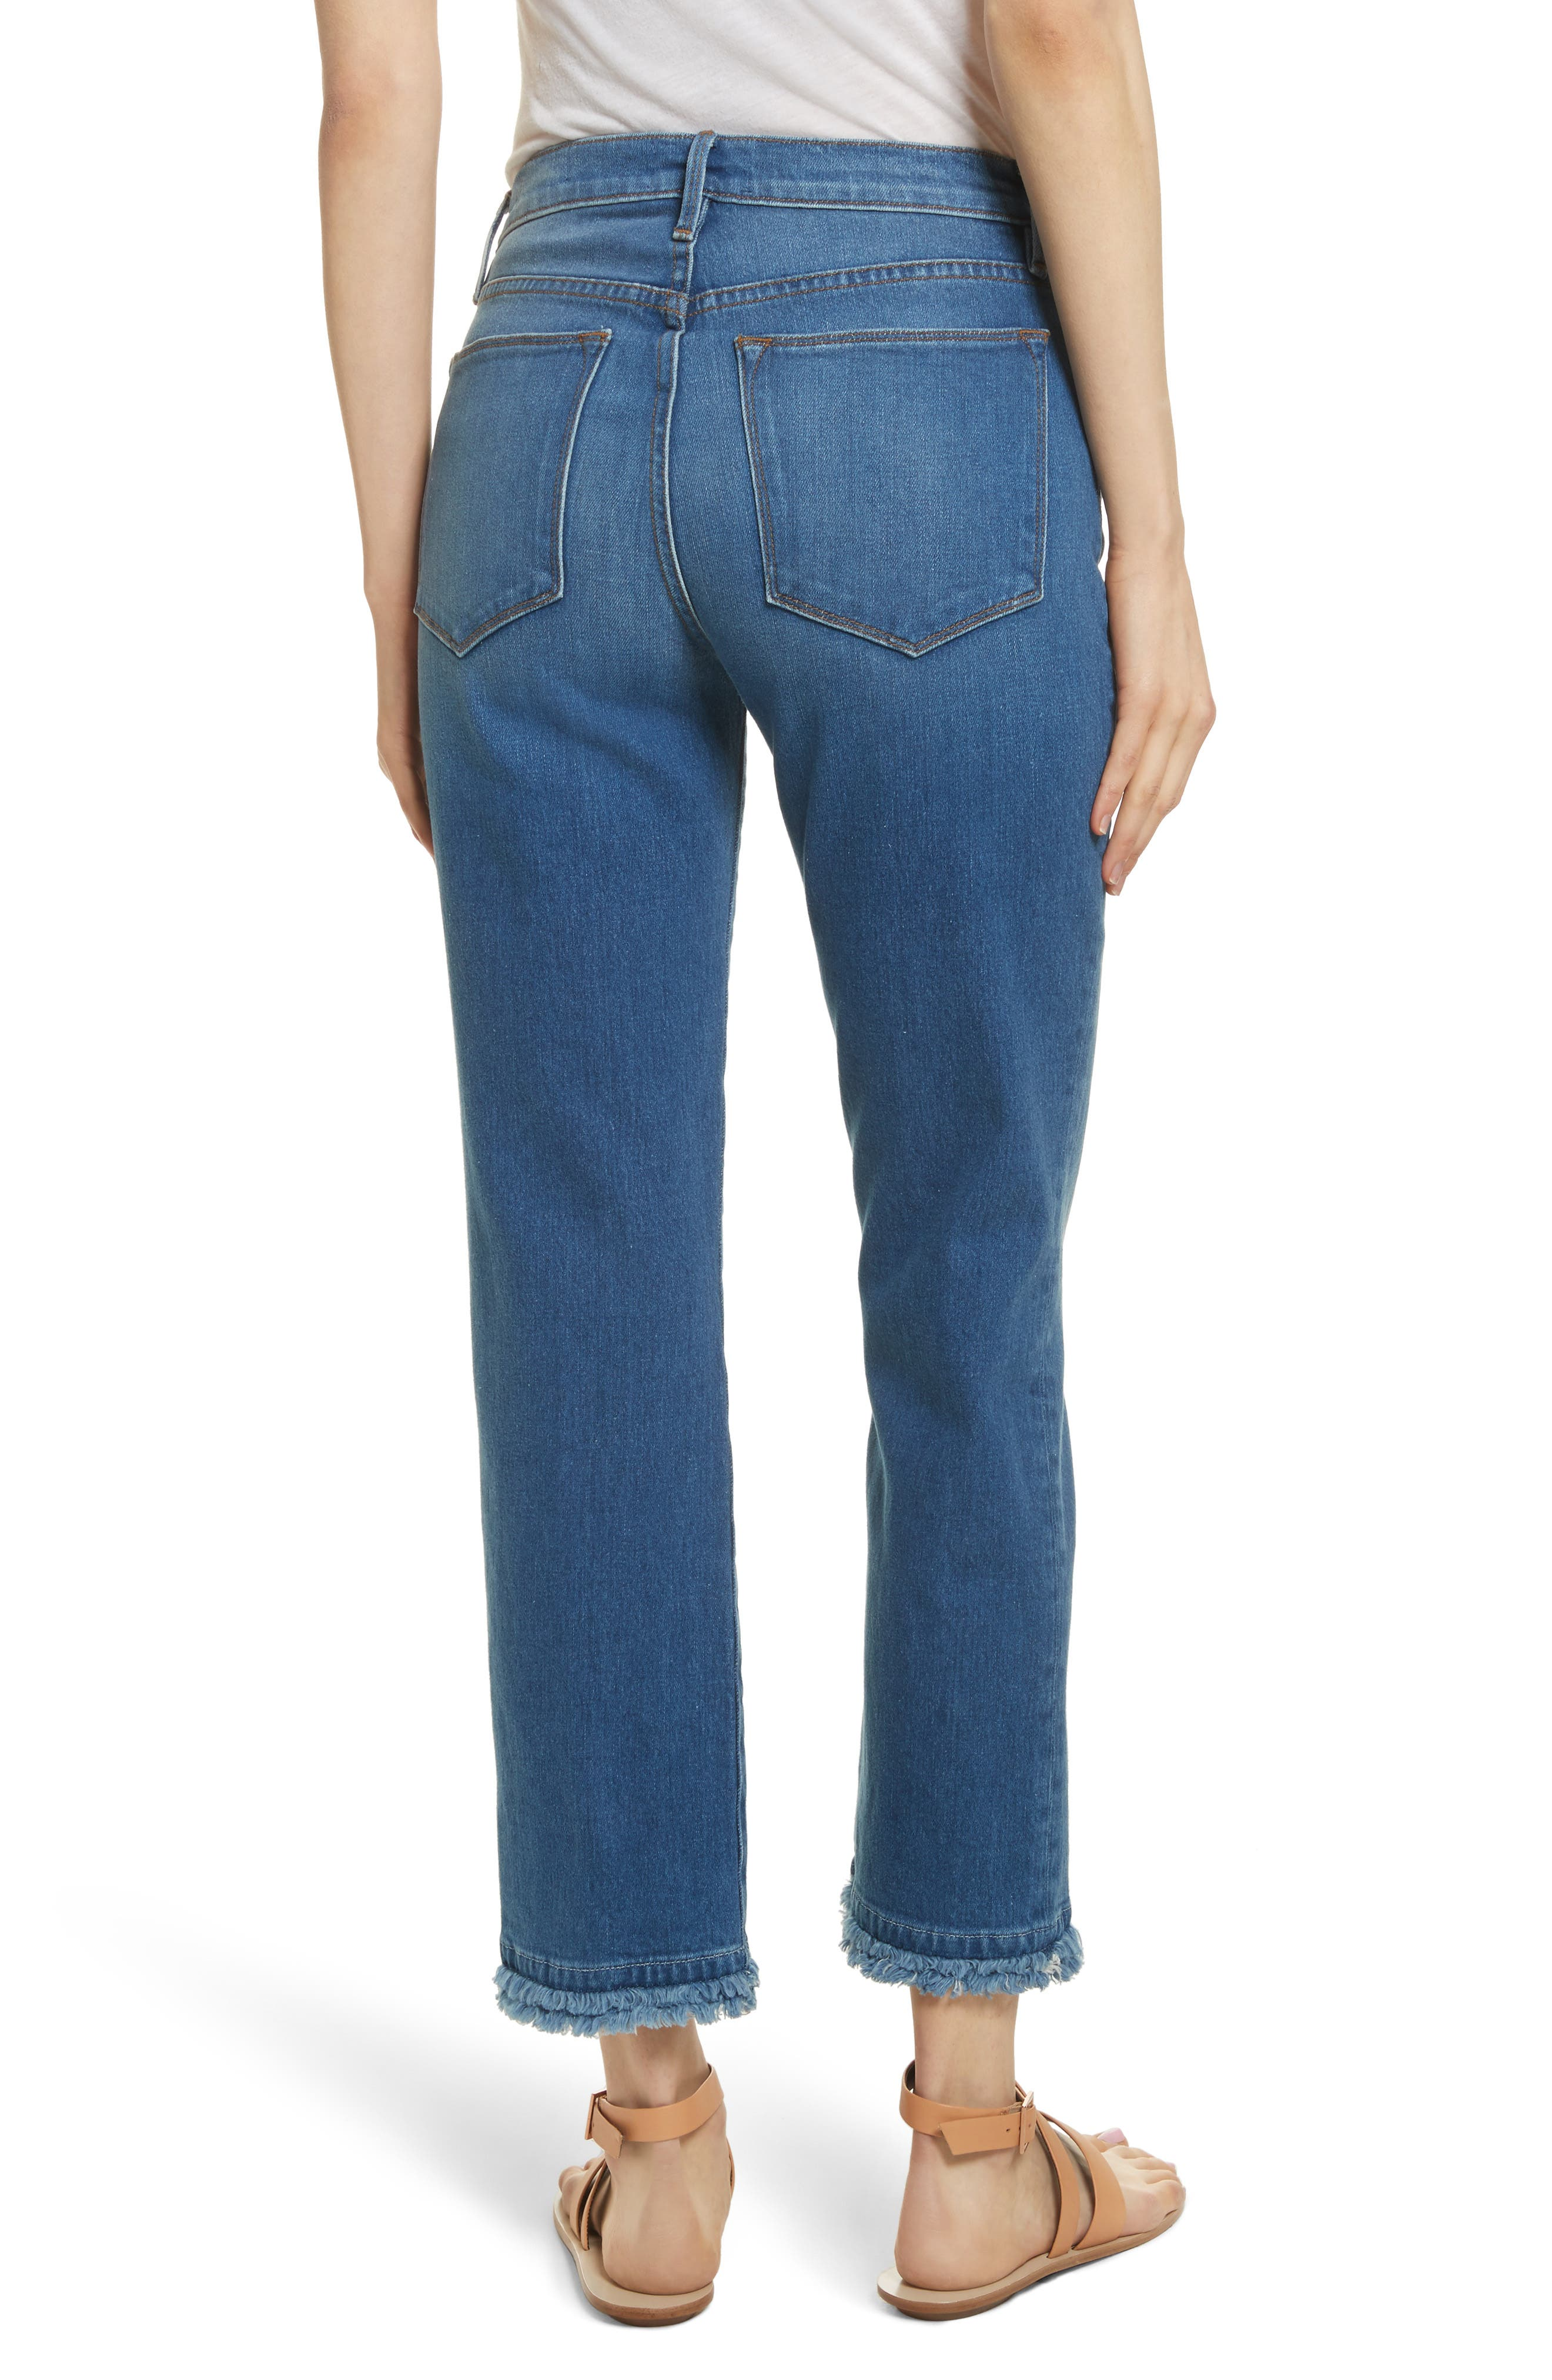 Le High Double Raw Edge High Waist Jeans,                             Alternate thumbnail 2, color,                             Whitway